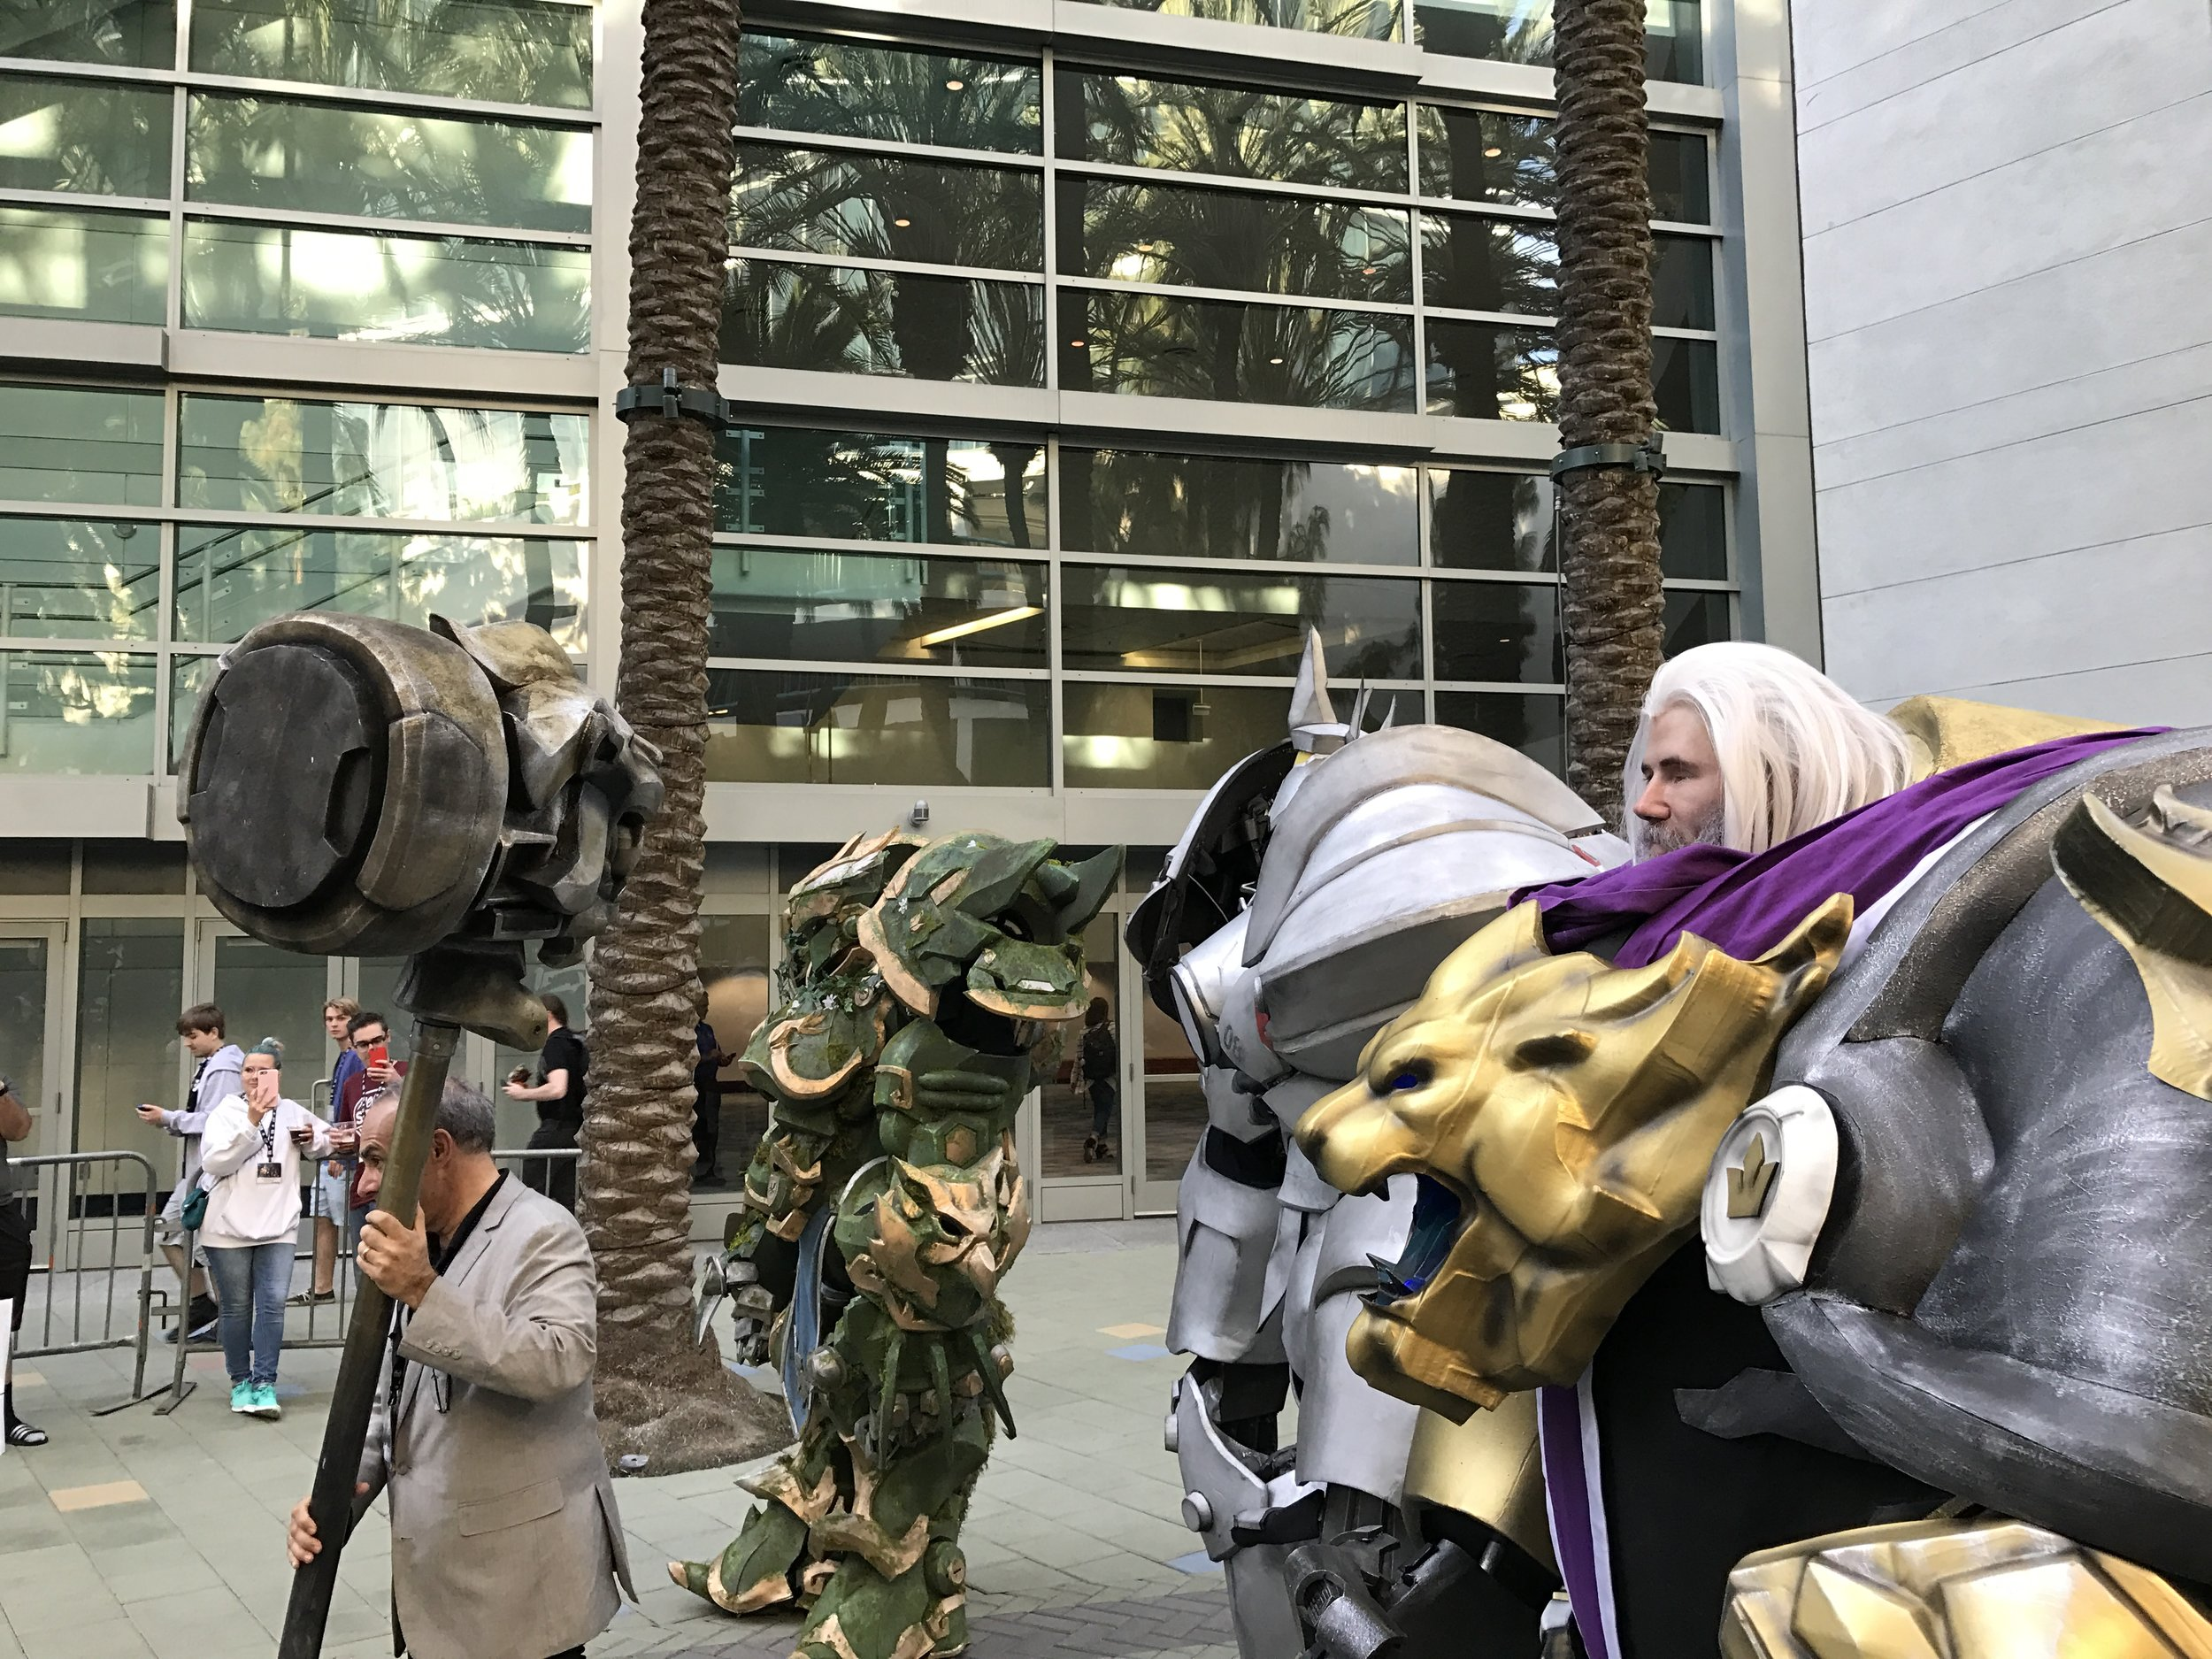 The voice of Reinhardt proceeded with 3-custom made Reinhardt Cosplayers.